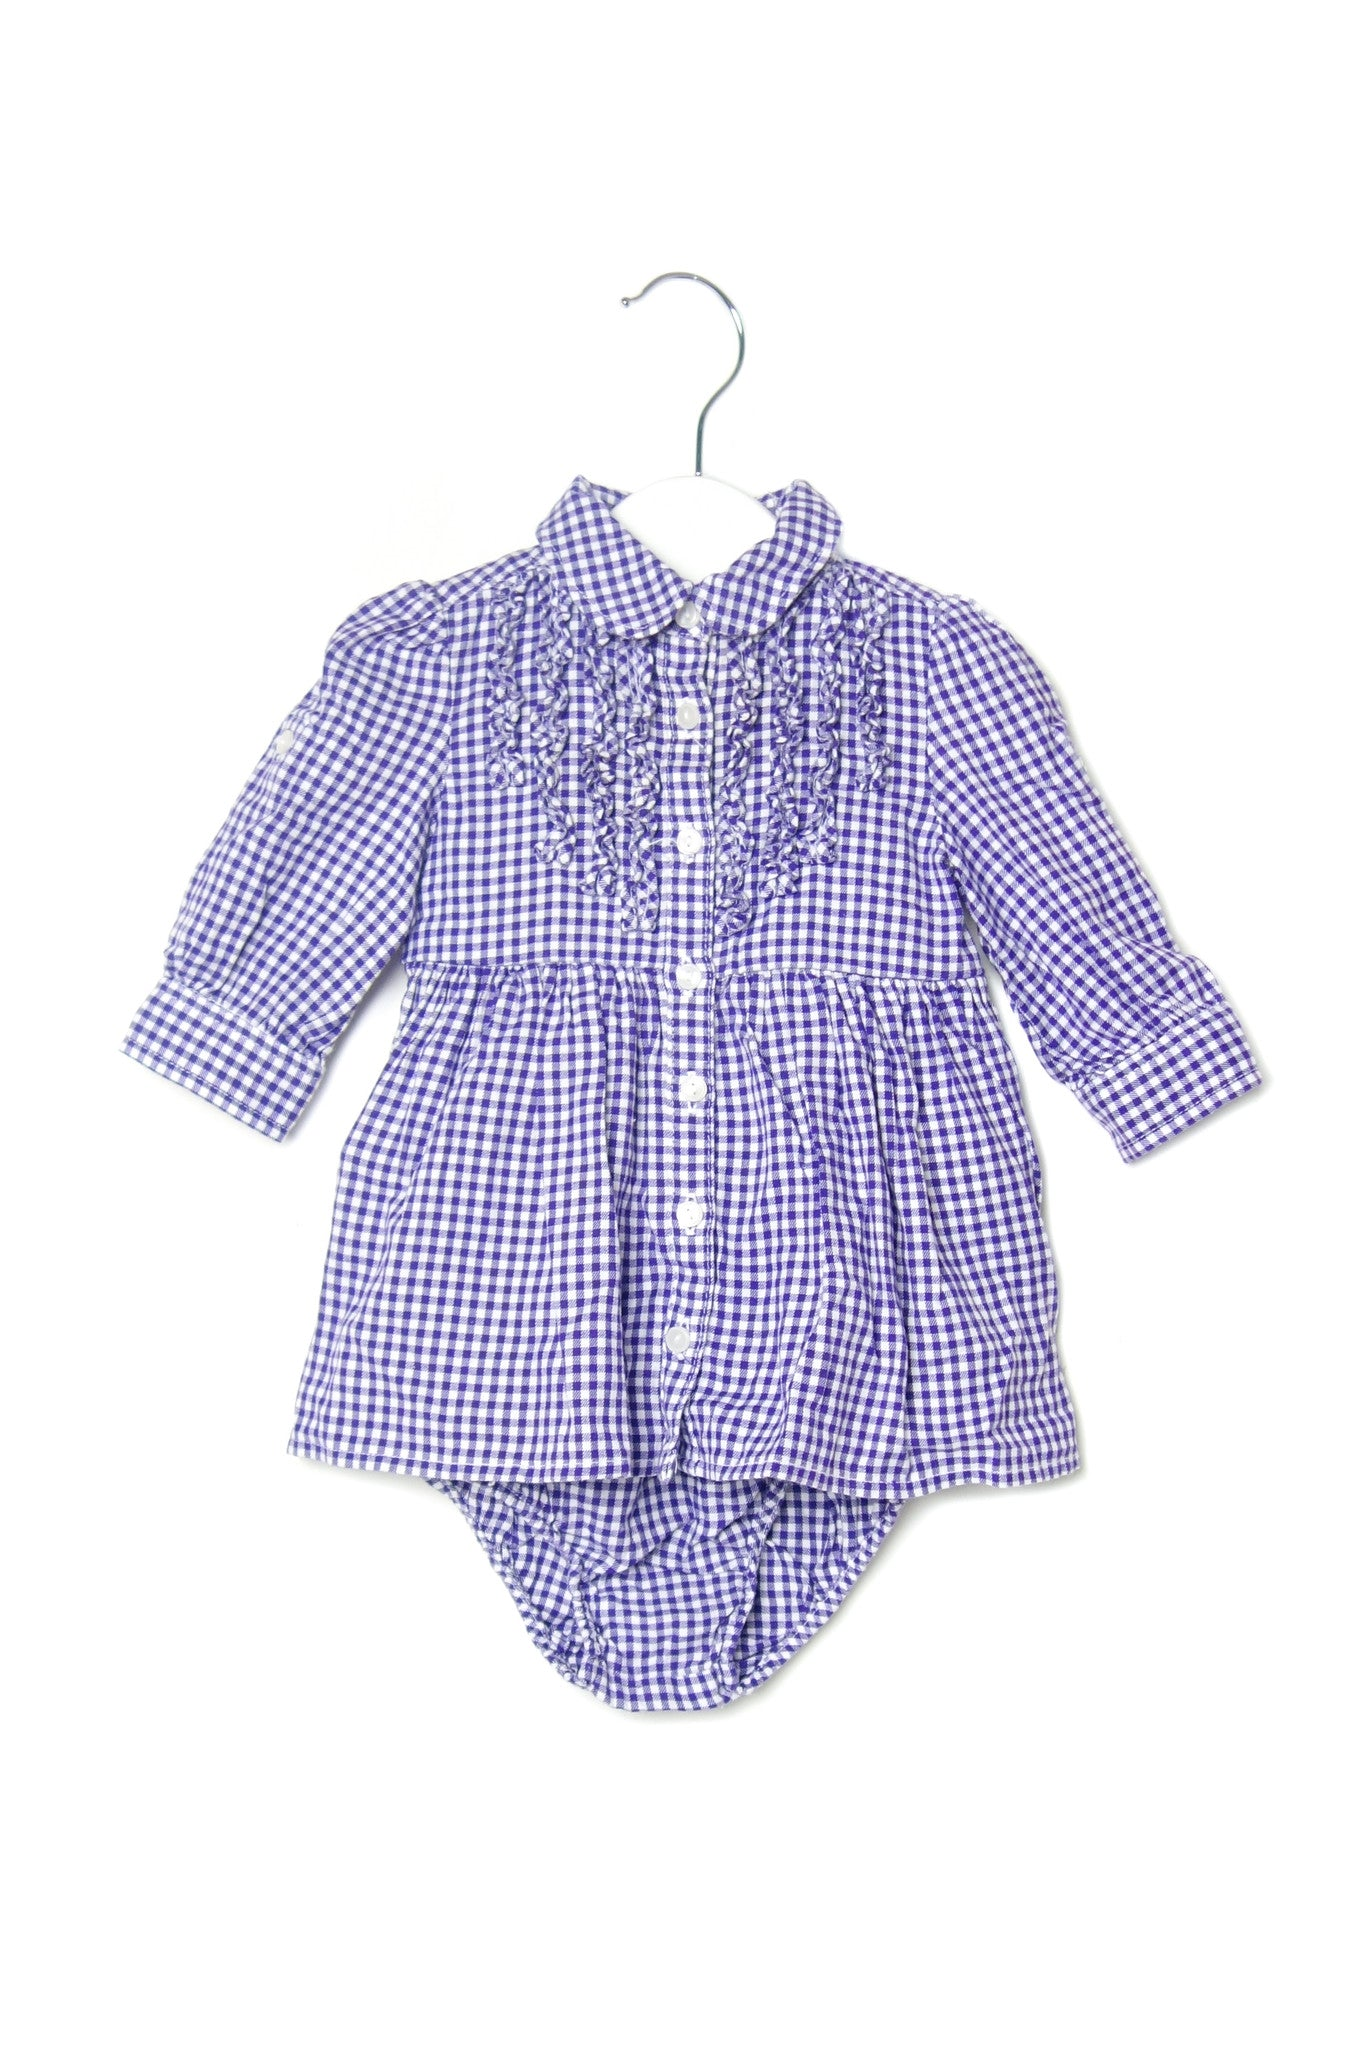 10001954 Ralph Lauren Baby~Dress and Bloomer 3M at Retykle